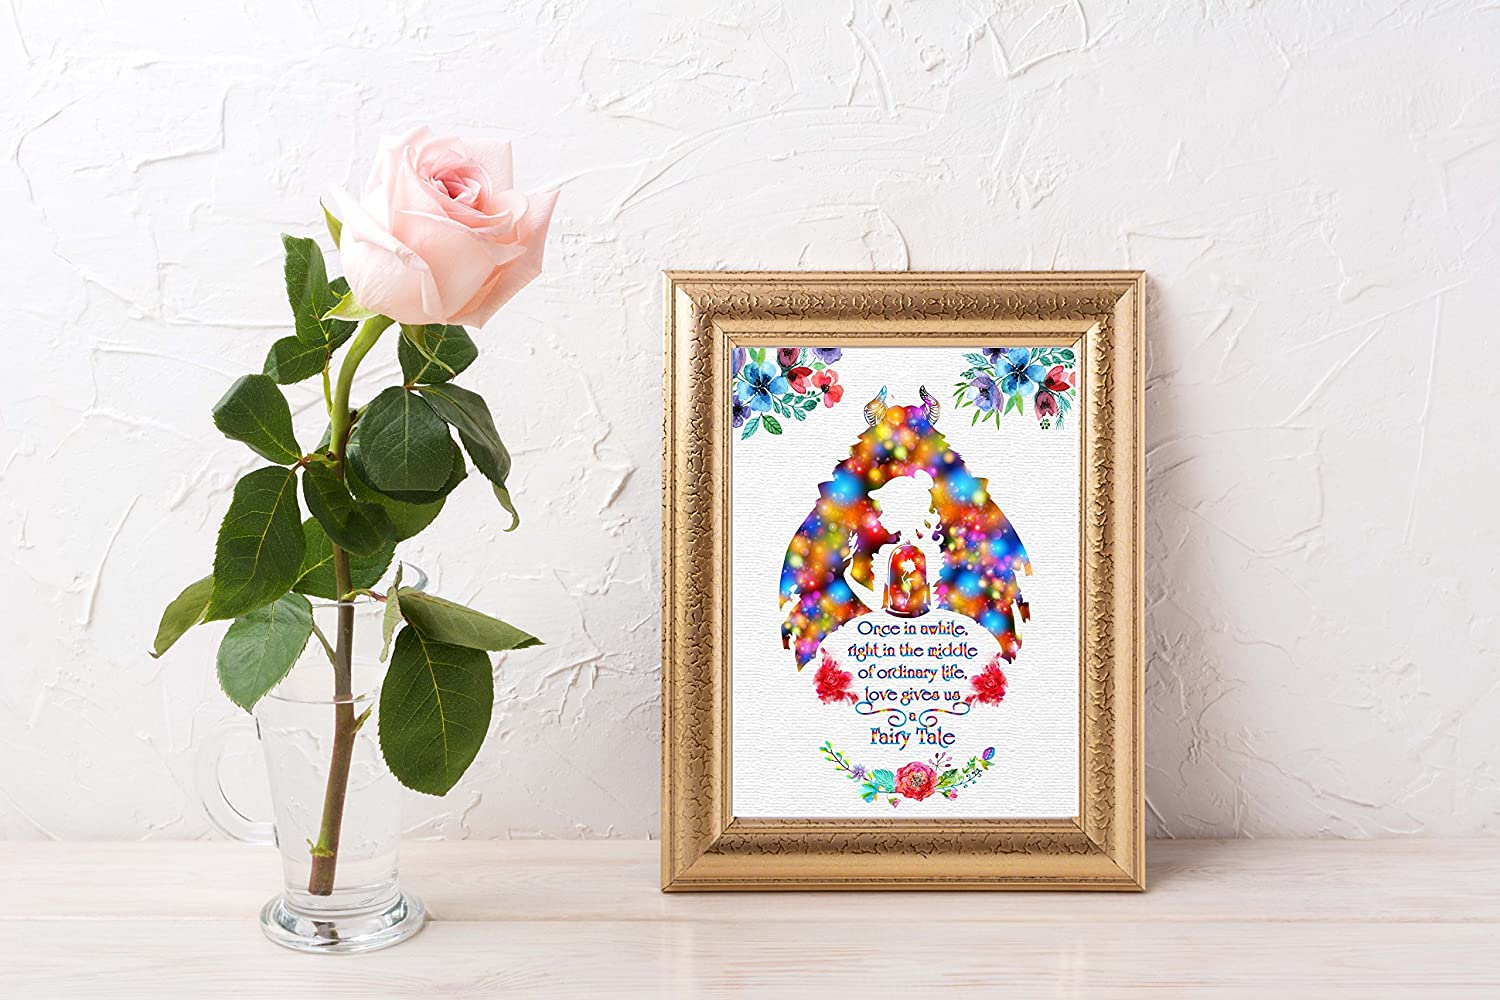 11X14 Uhomate Princess Belle Beauty and The Beast Beauty Beast Home Canvas Prints Wall Art Anniversary Gifts Baby Gift Inspirational Quotes Wall Decor Living Room Bedroom Bathroom Artwork C018